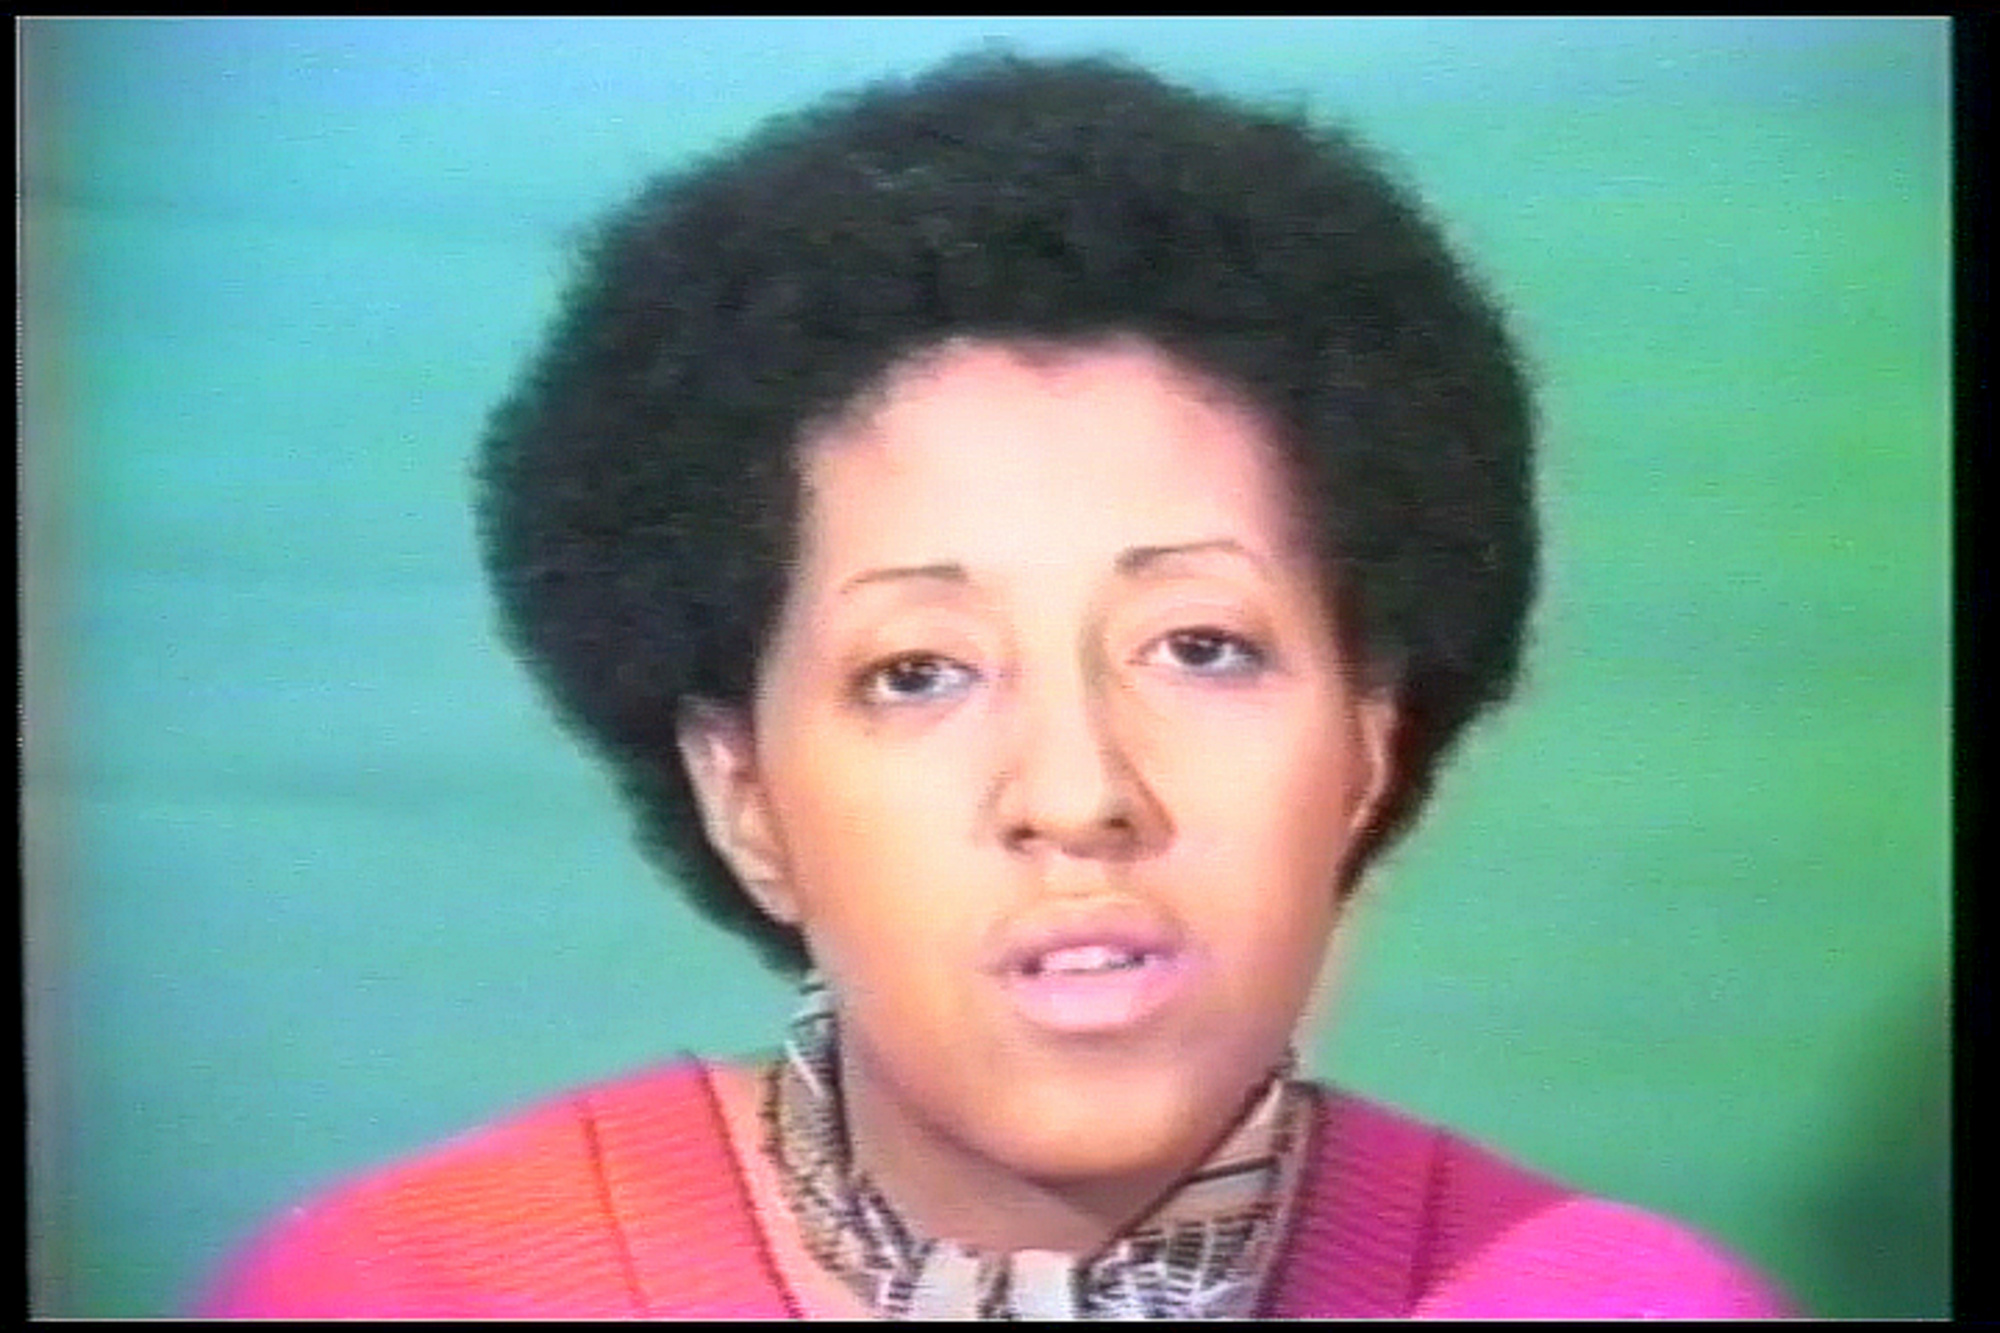 Howardena Pindell. Free, White and 21. 1980. Video (color, sound), 12:15 min. Gift of Jerry I. Speyer and Katherine G. Farley, Anna Marie and Robert F. Shapiro, and Marie-Josée and Henry R. Kravis. © 2019 Howardena Pindell. Courtesy of the artist and The Kitchen, New York